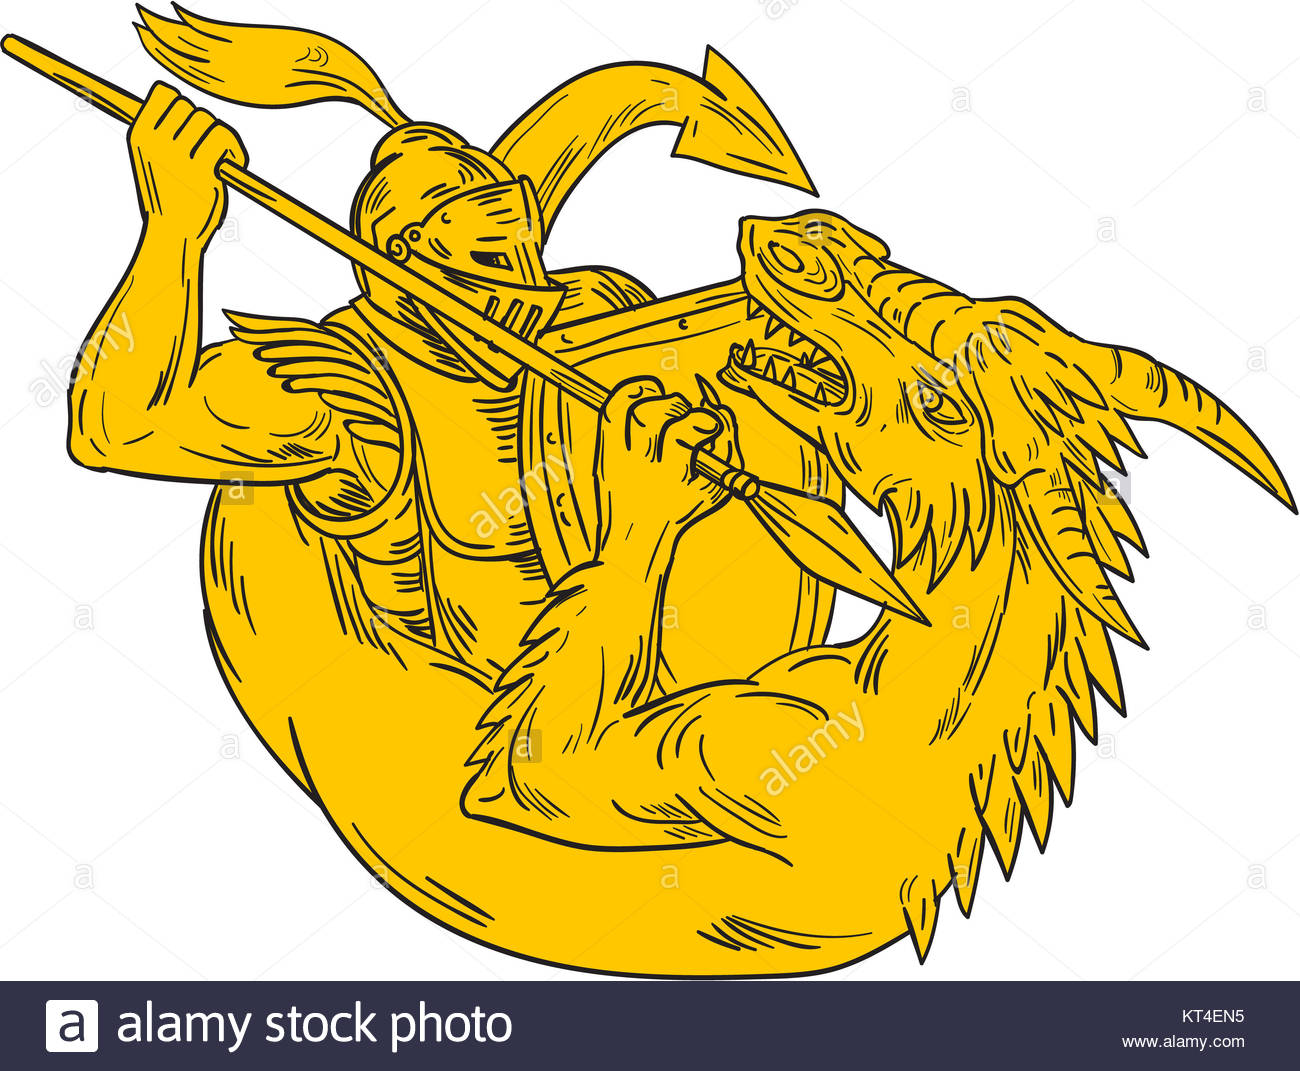 1300x1071 Knight Fighting Dragon Spear Drawing Stock Photo, Royalty Free